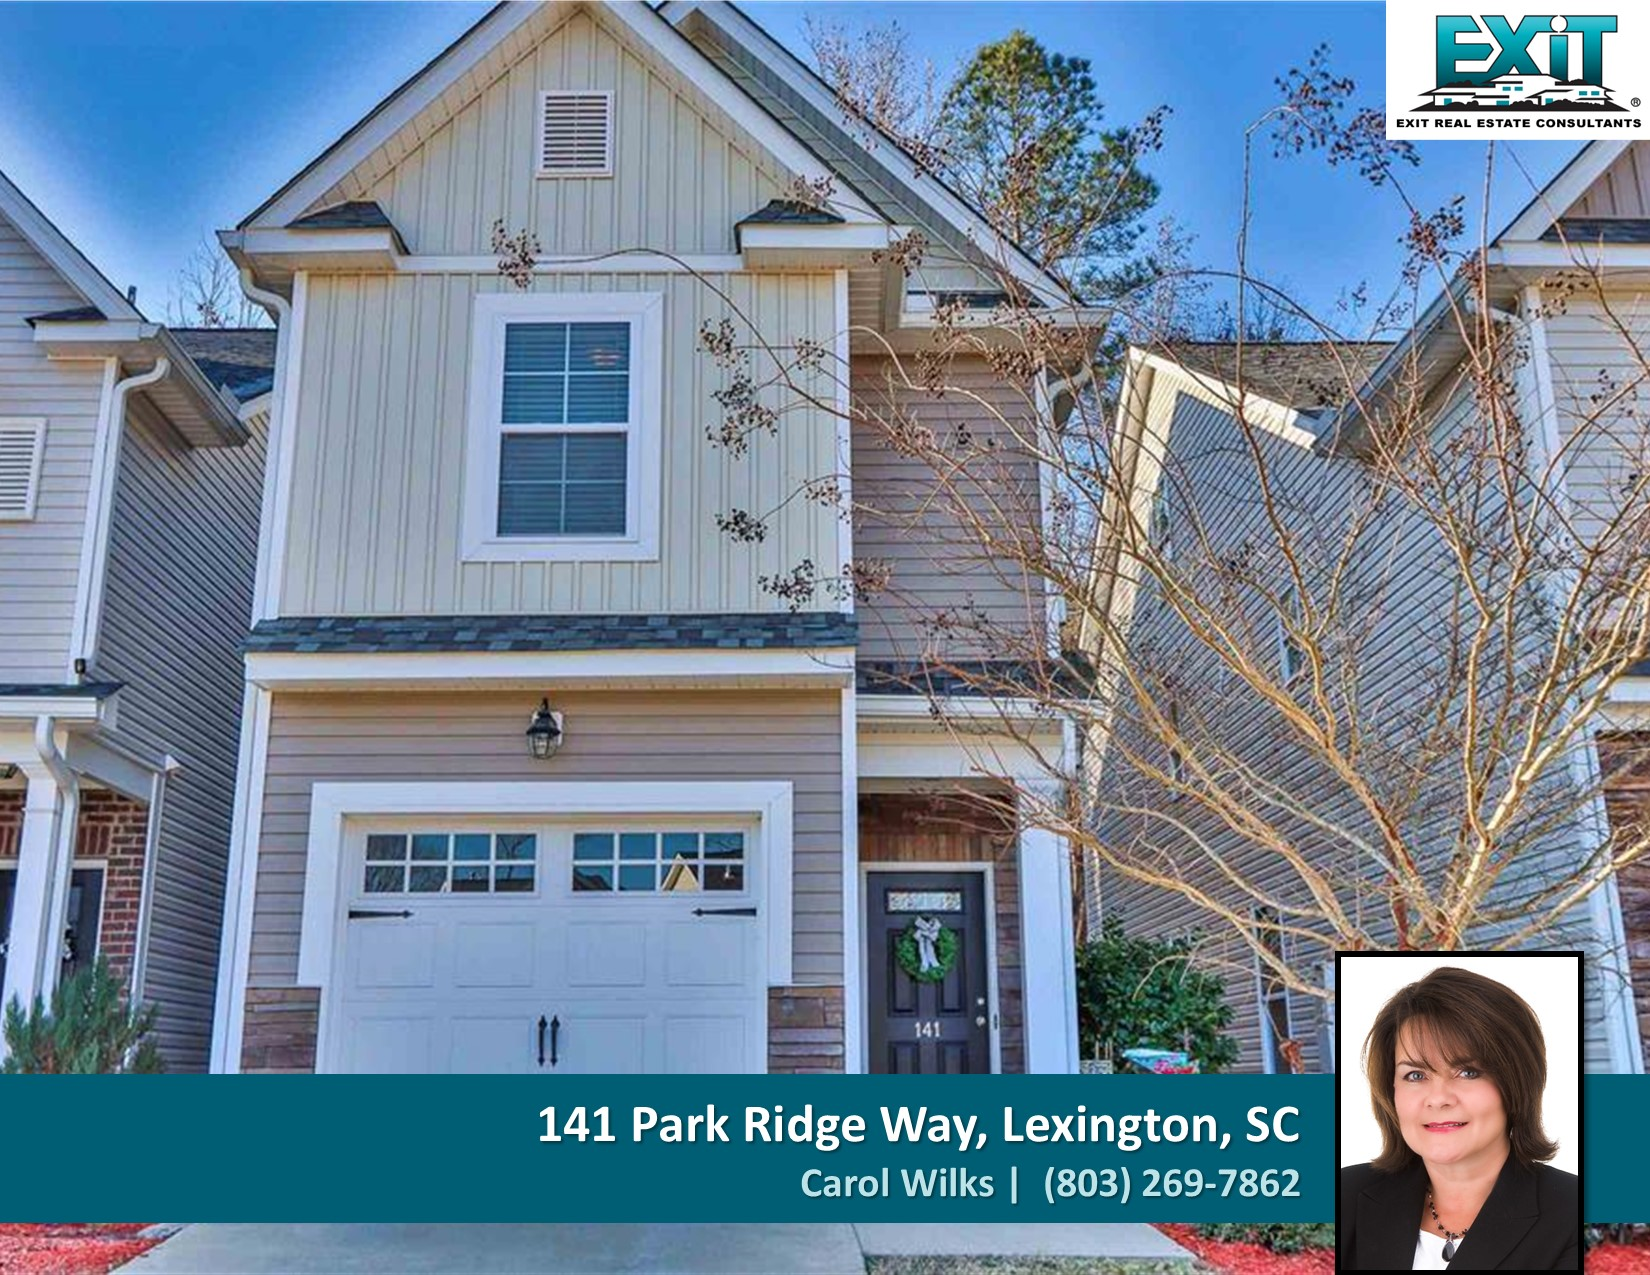 Just listed in Park Ridge